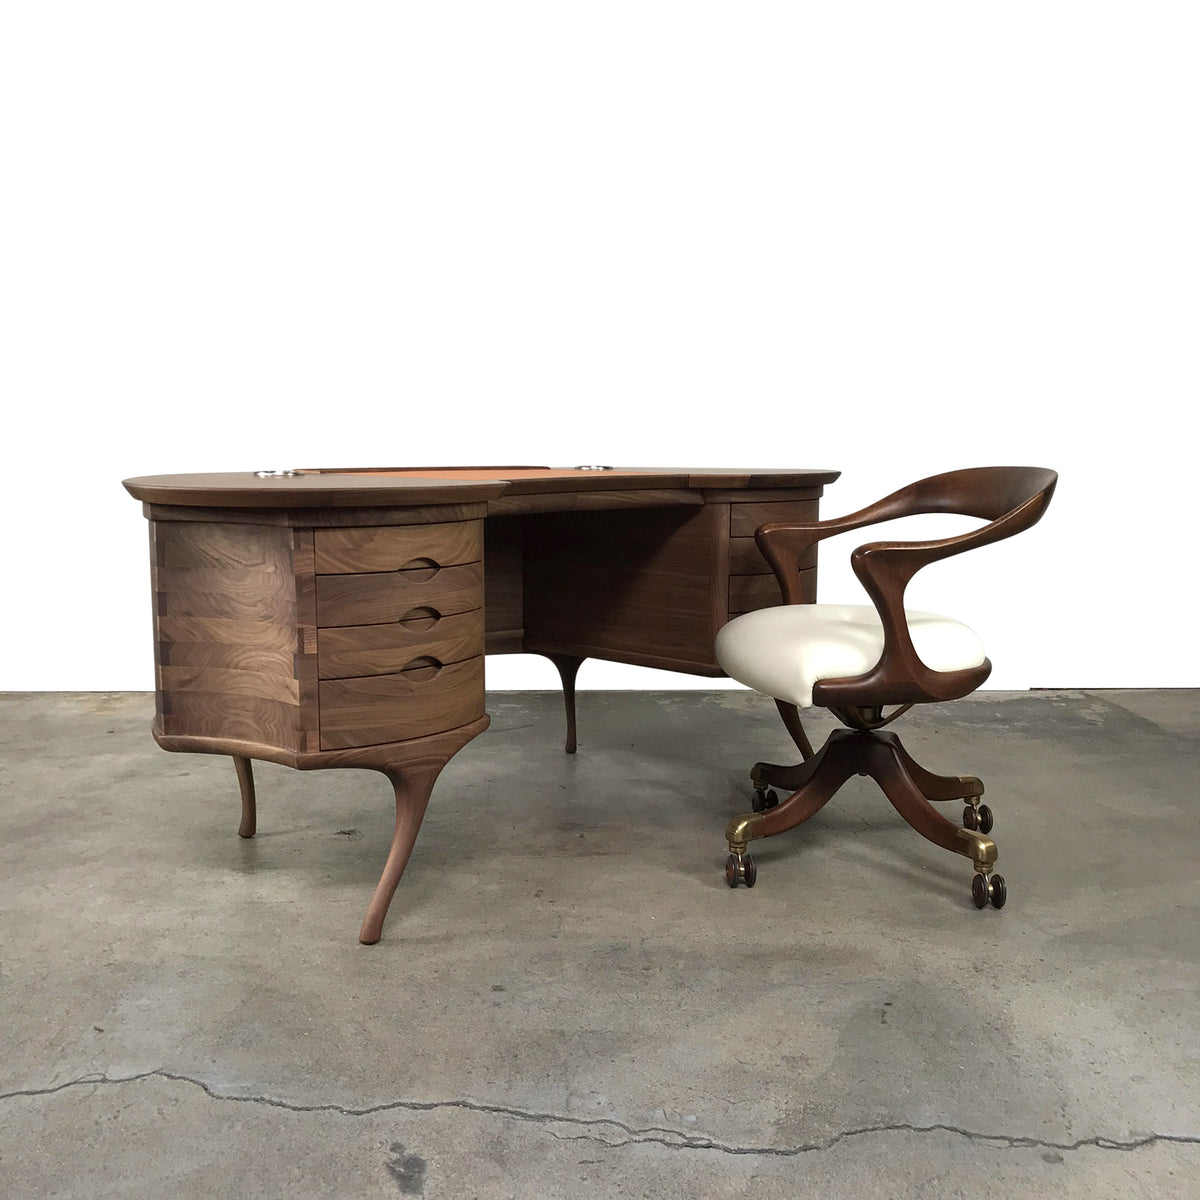 Ceccotti Bean Desk by Roberto Lazzeroni - work of art!